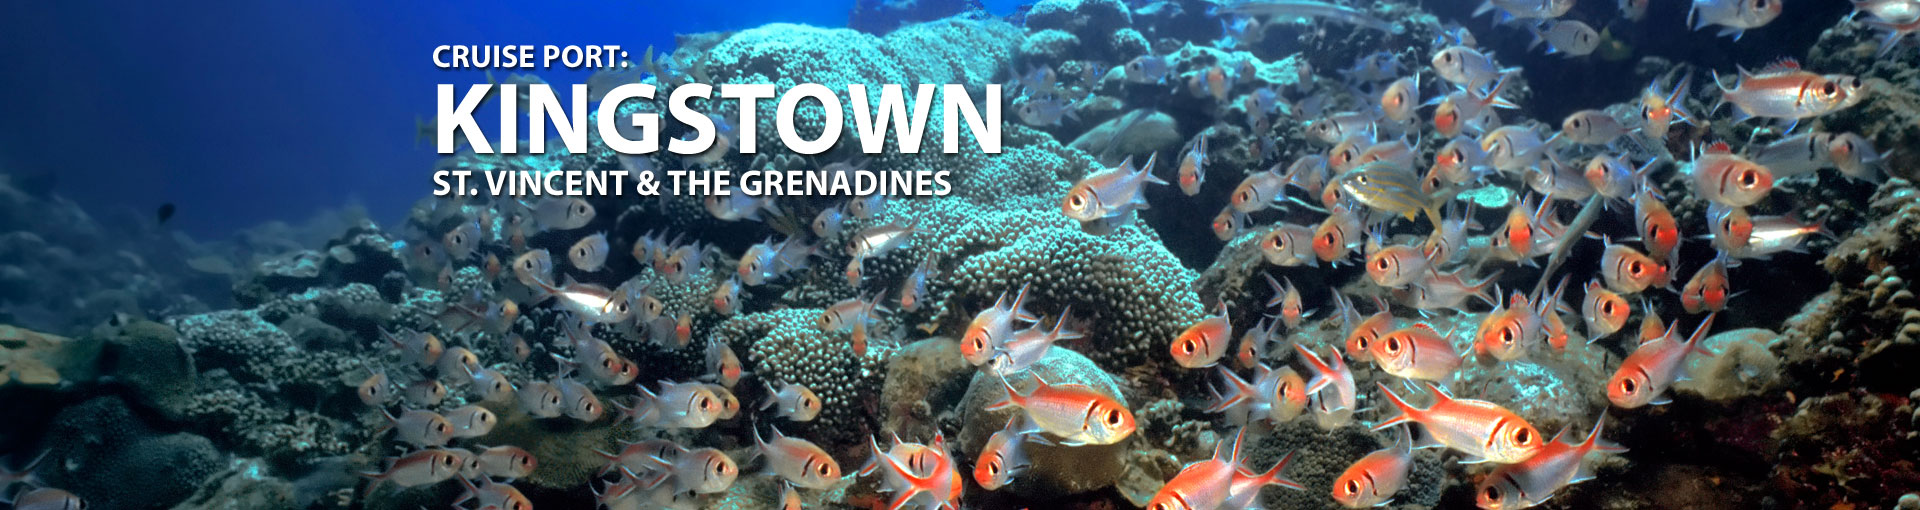 Cruises to Kingstown, St. Vincent & The Grenadines